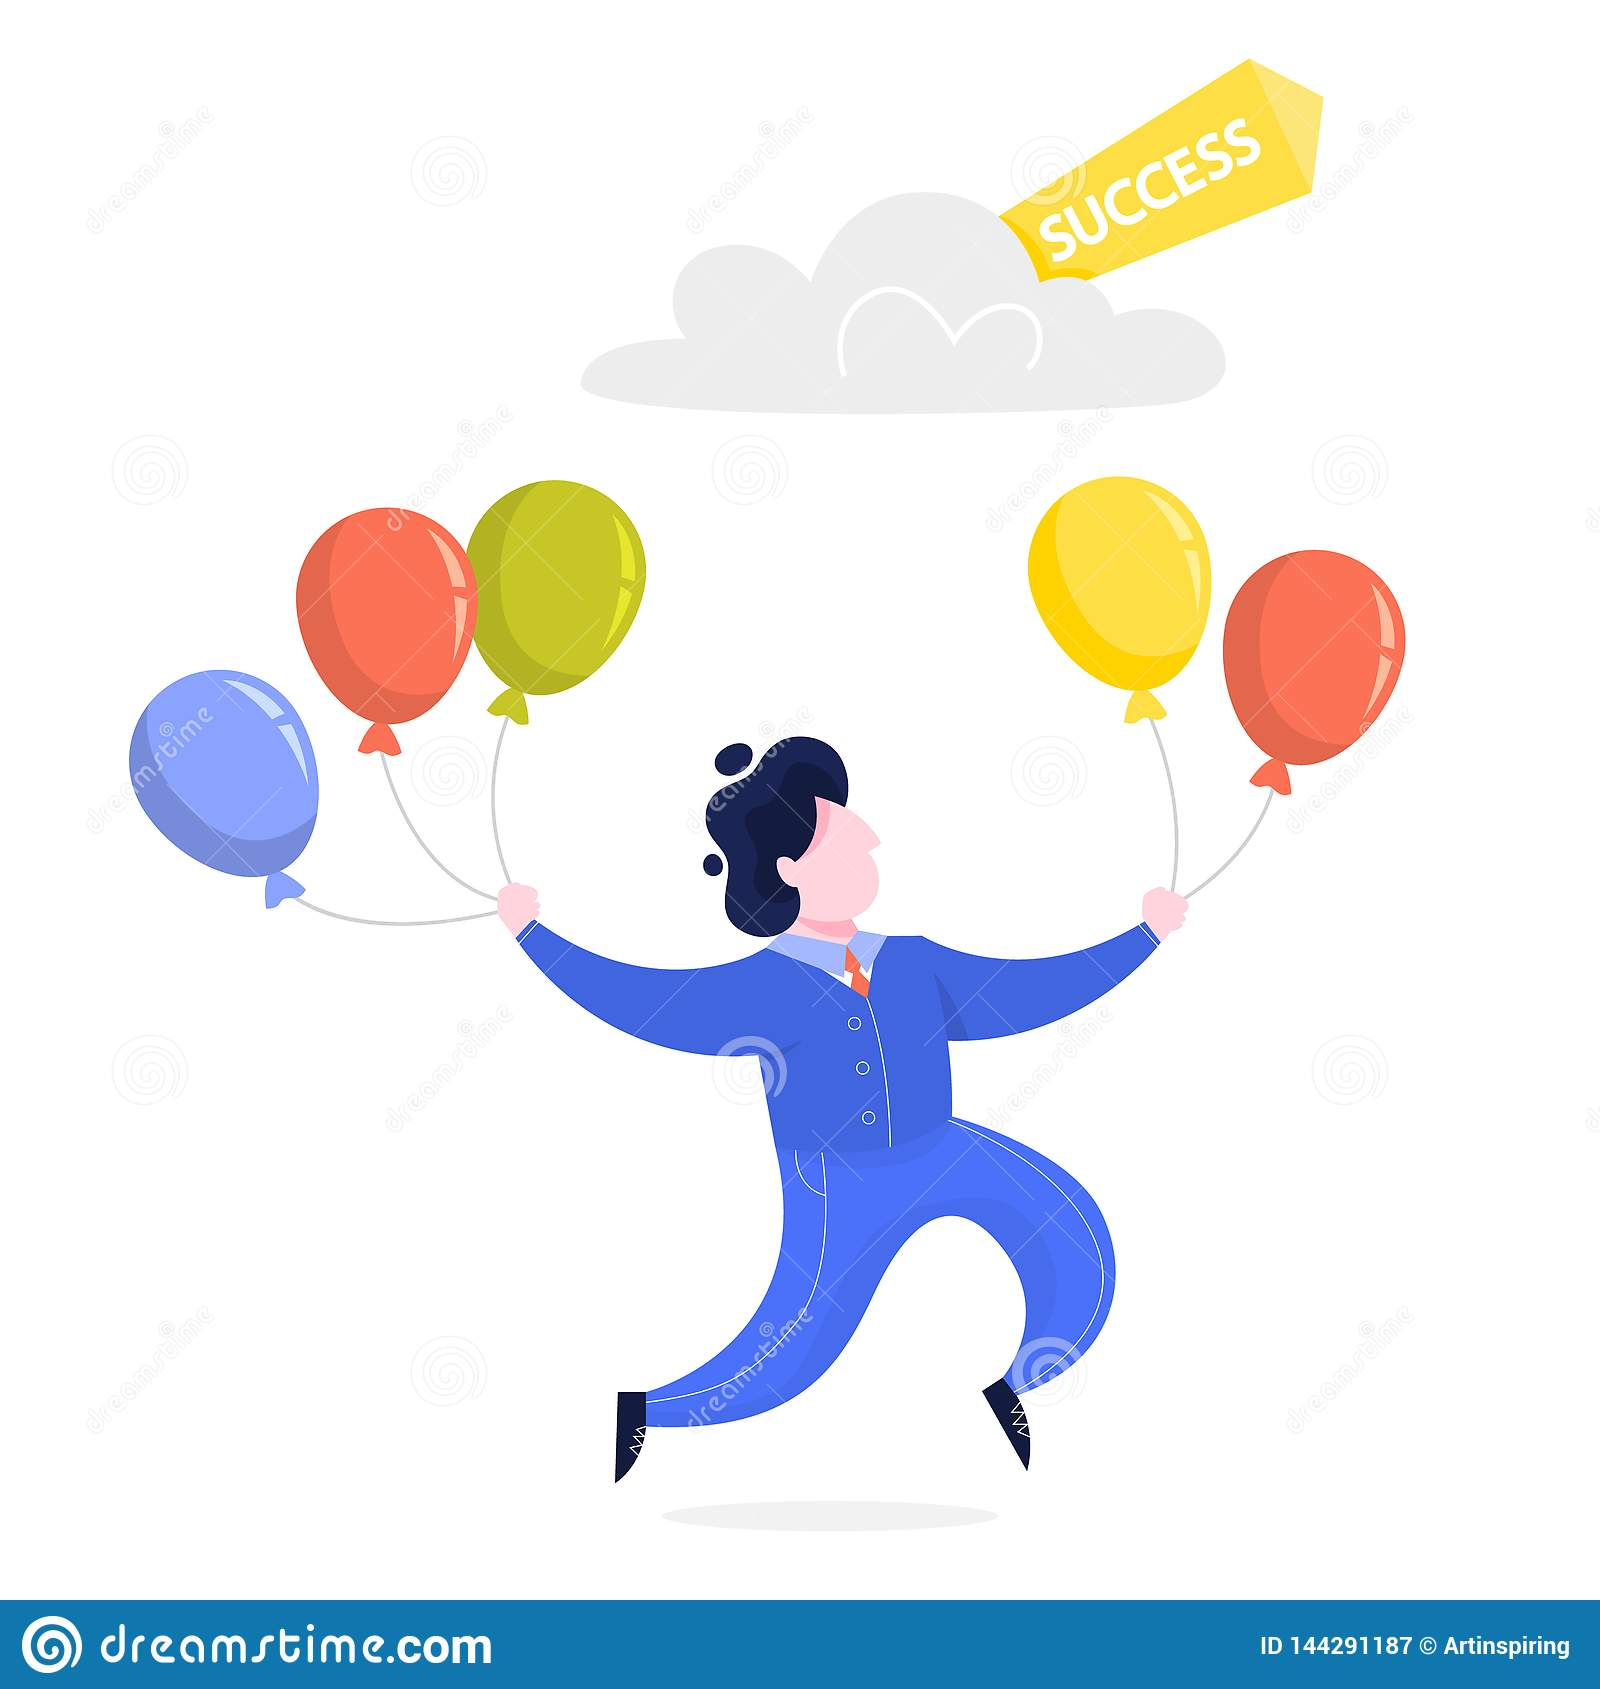 Businessman with balloon fly to the success. Idea of growth